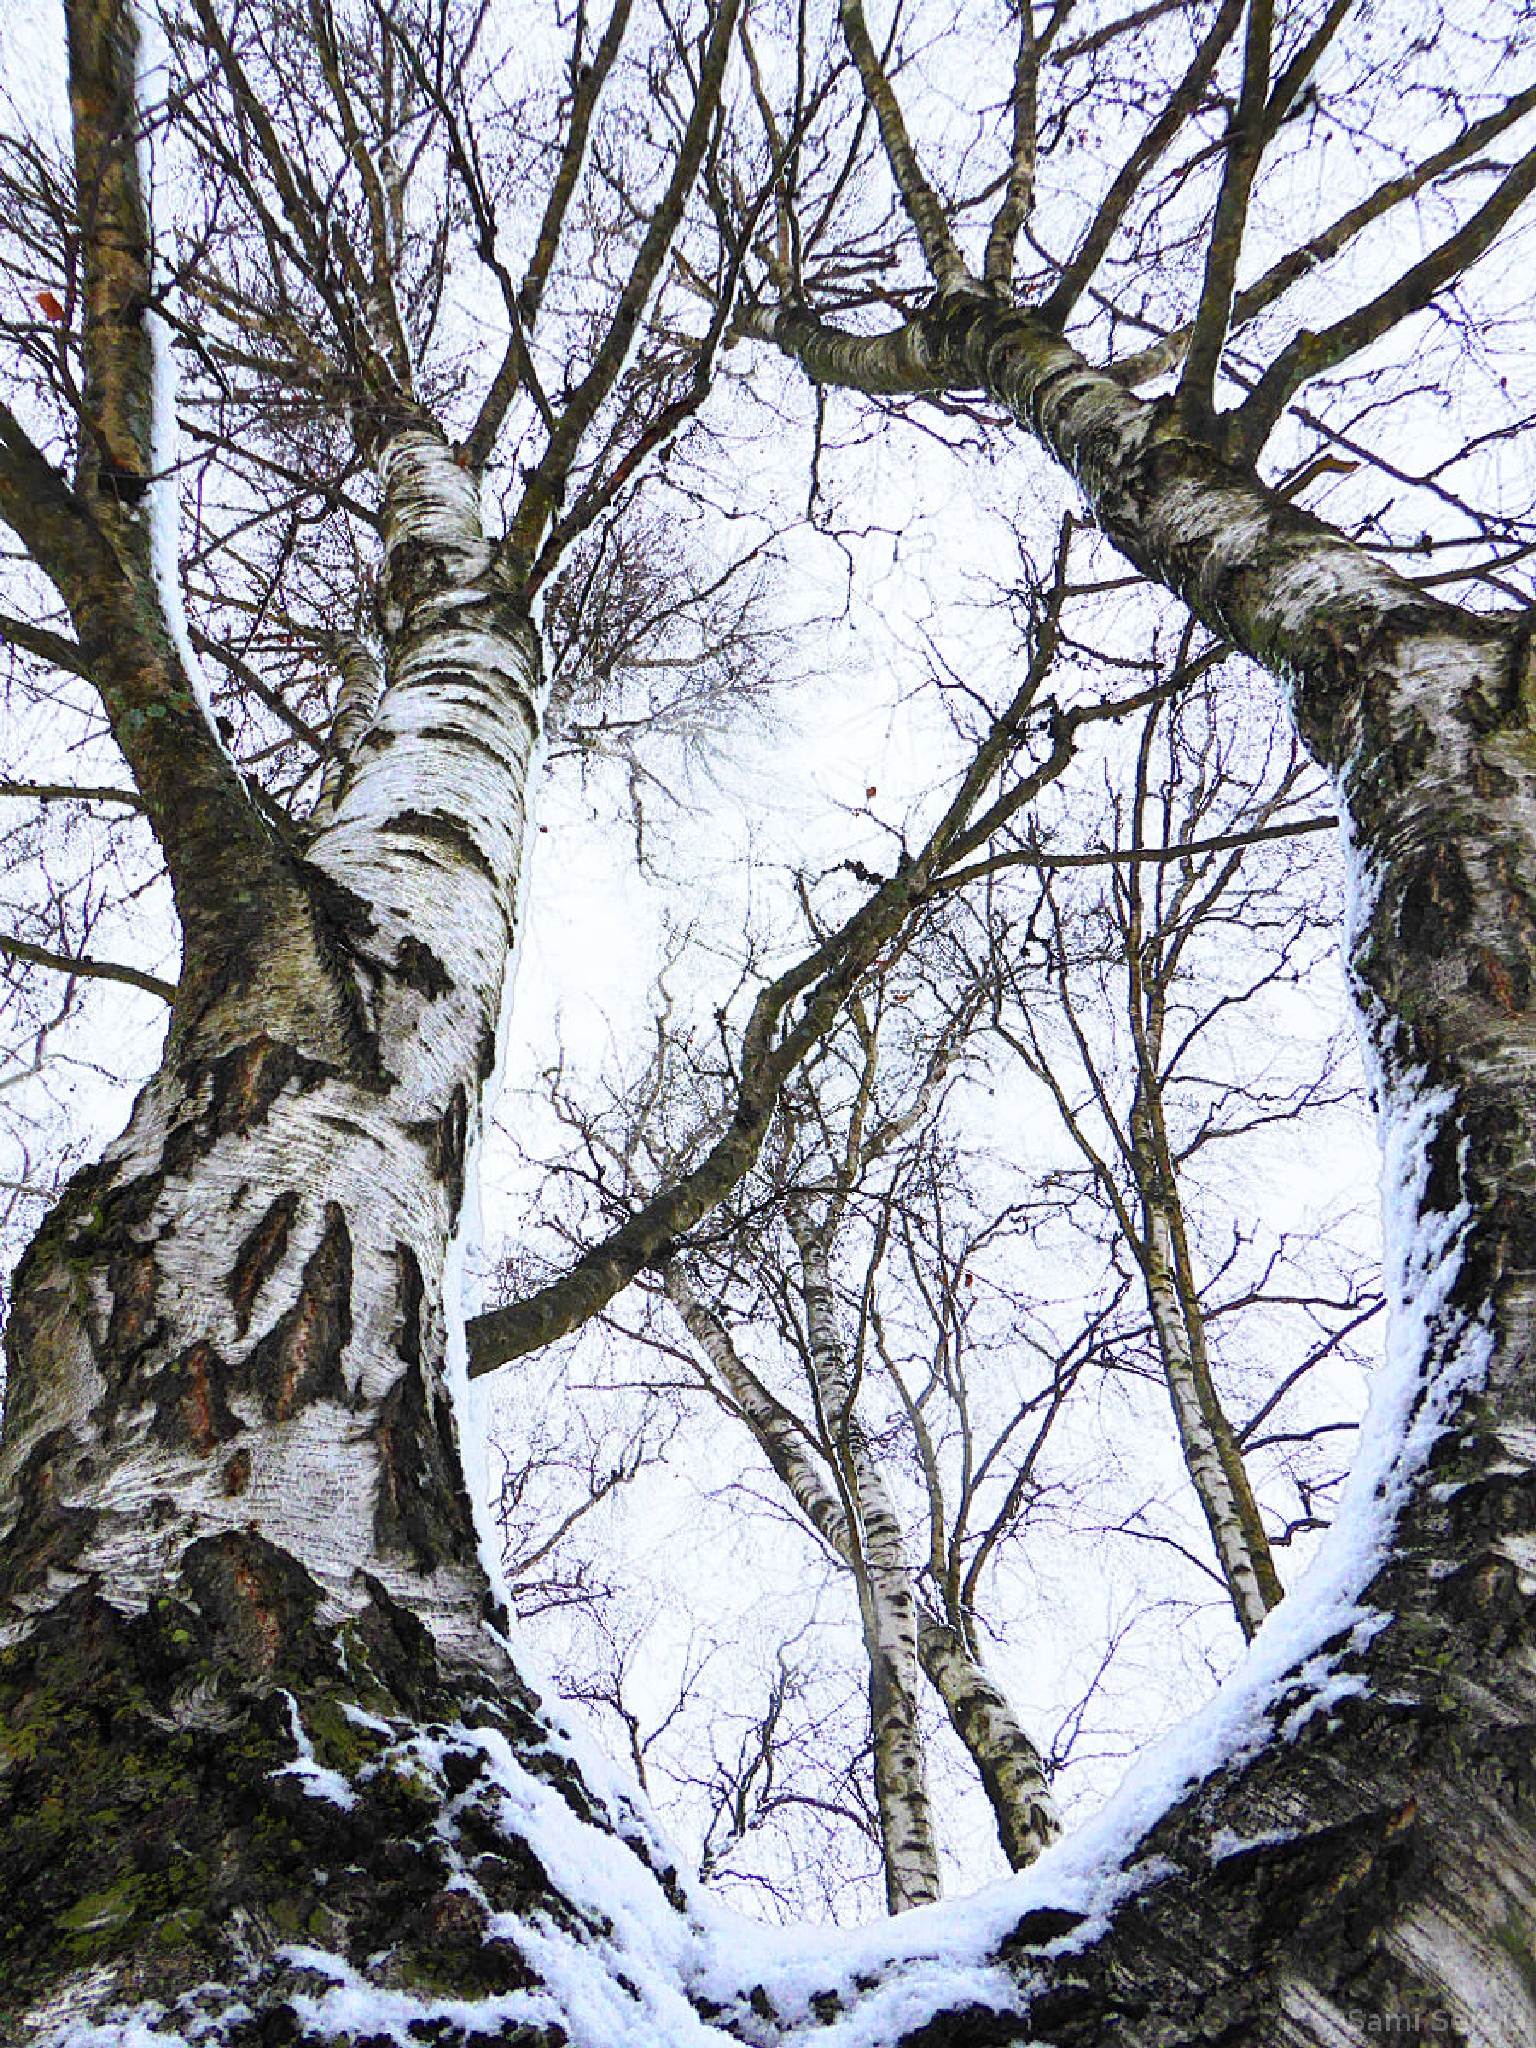 Birch trees in the winter by Sami Serola